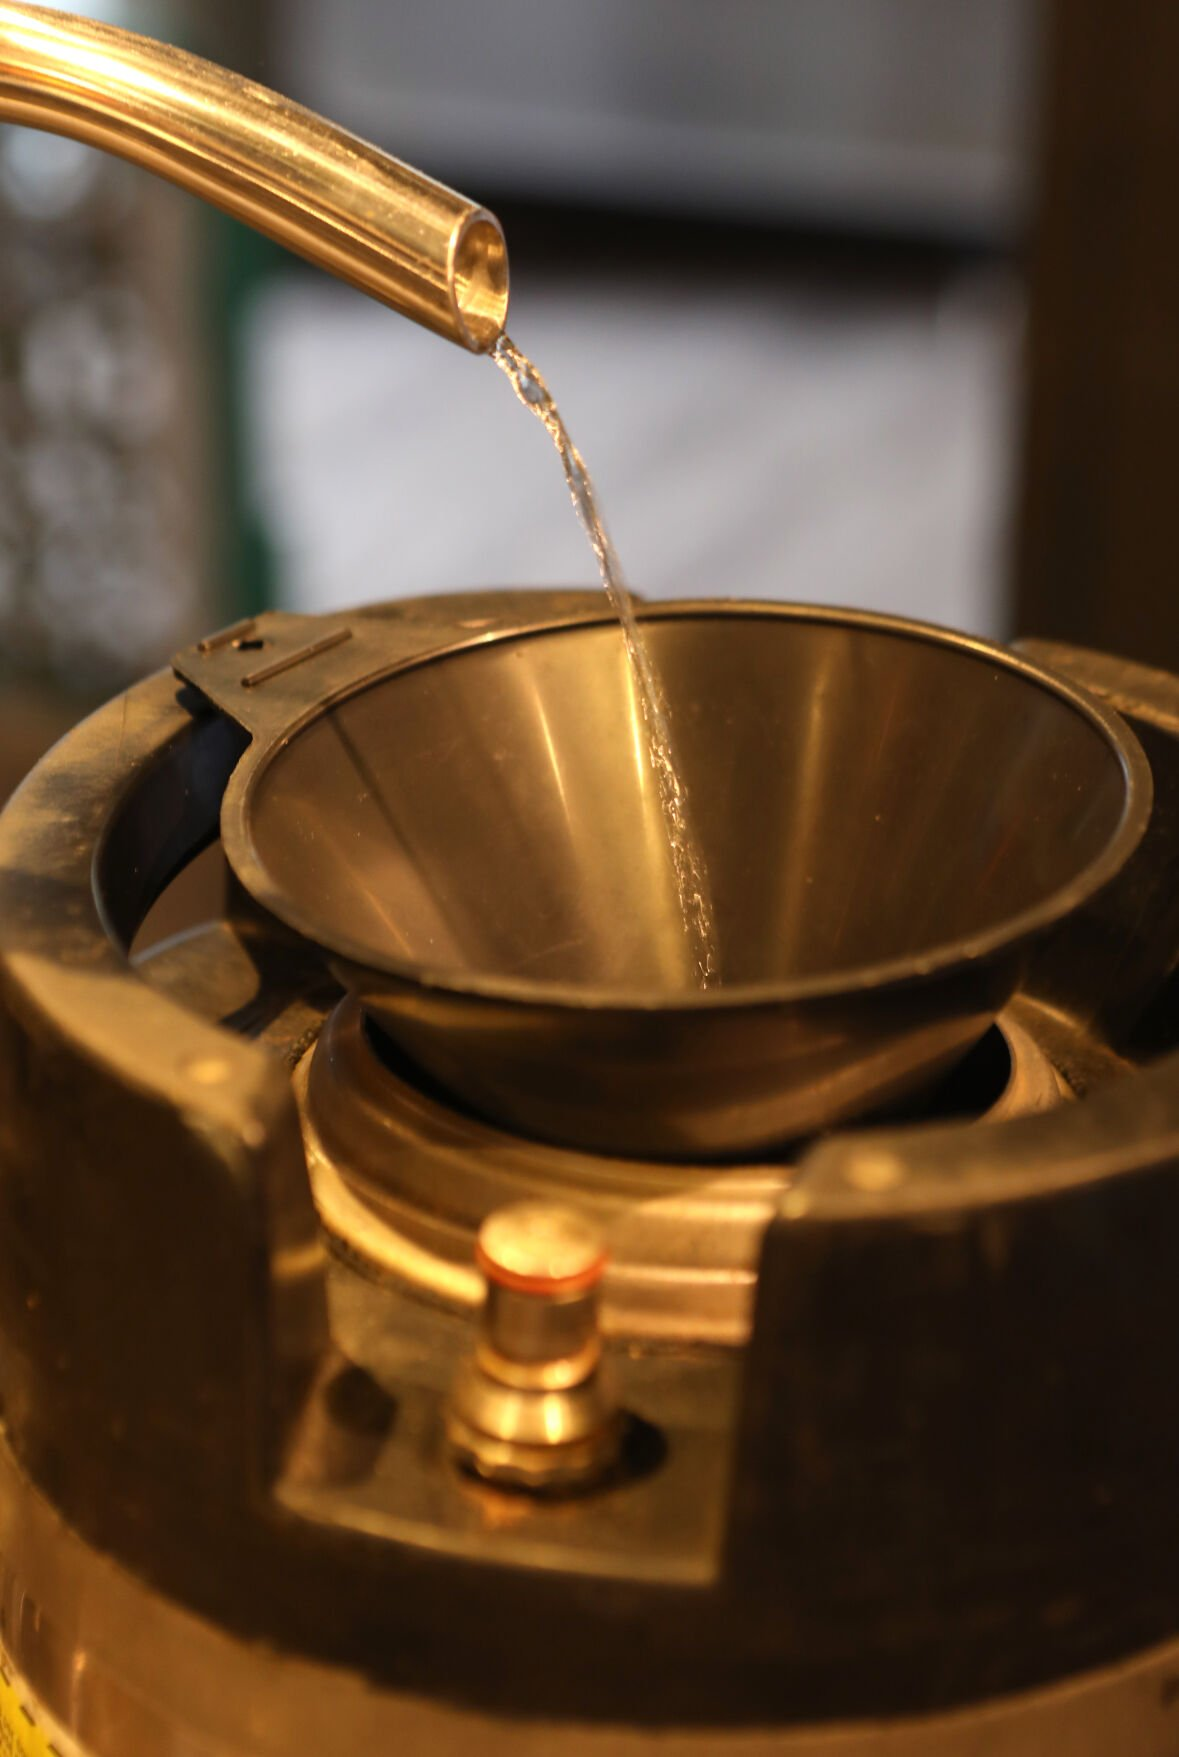 Gin flows out of the distiller